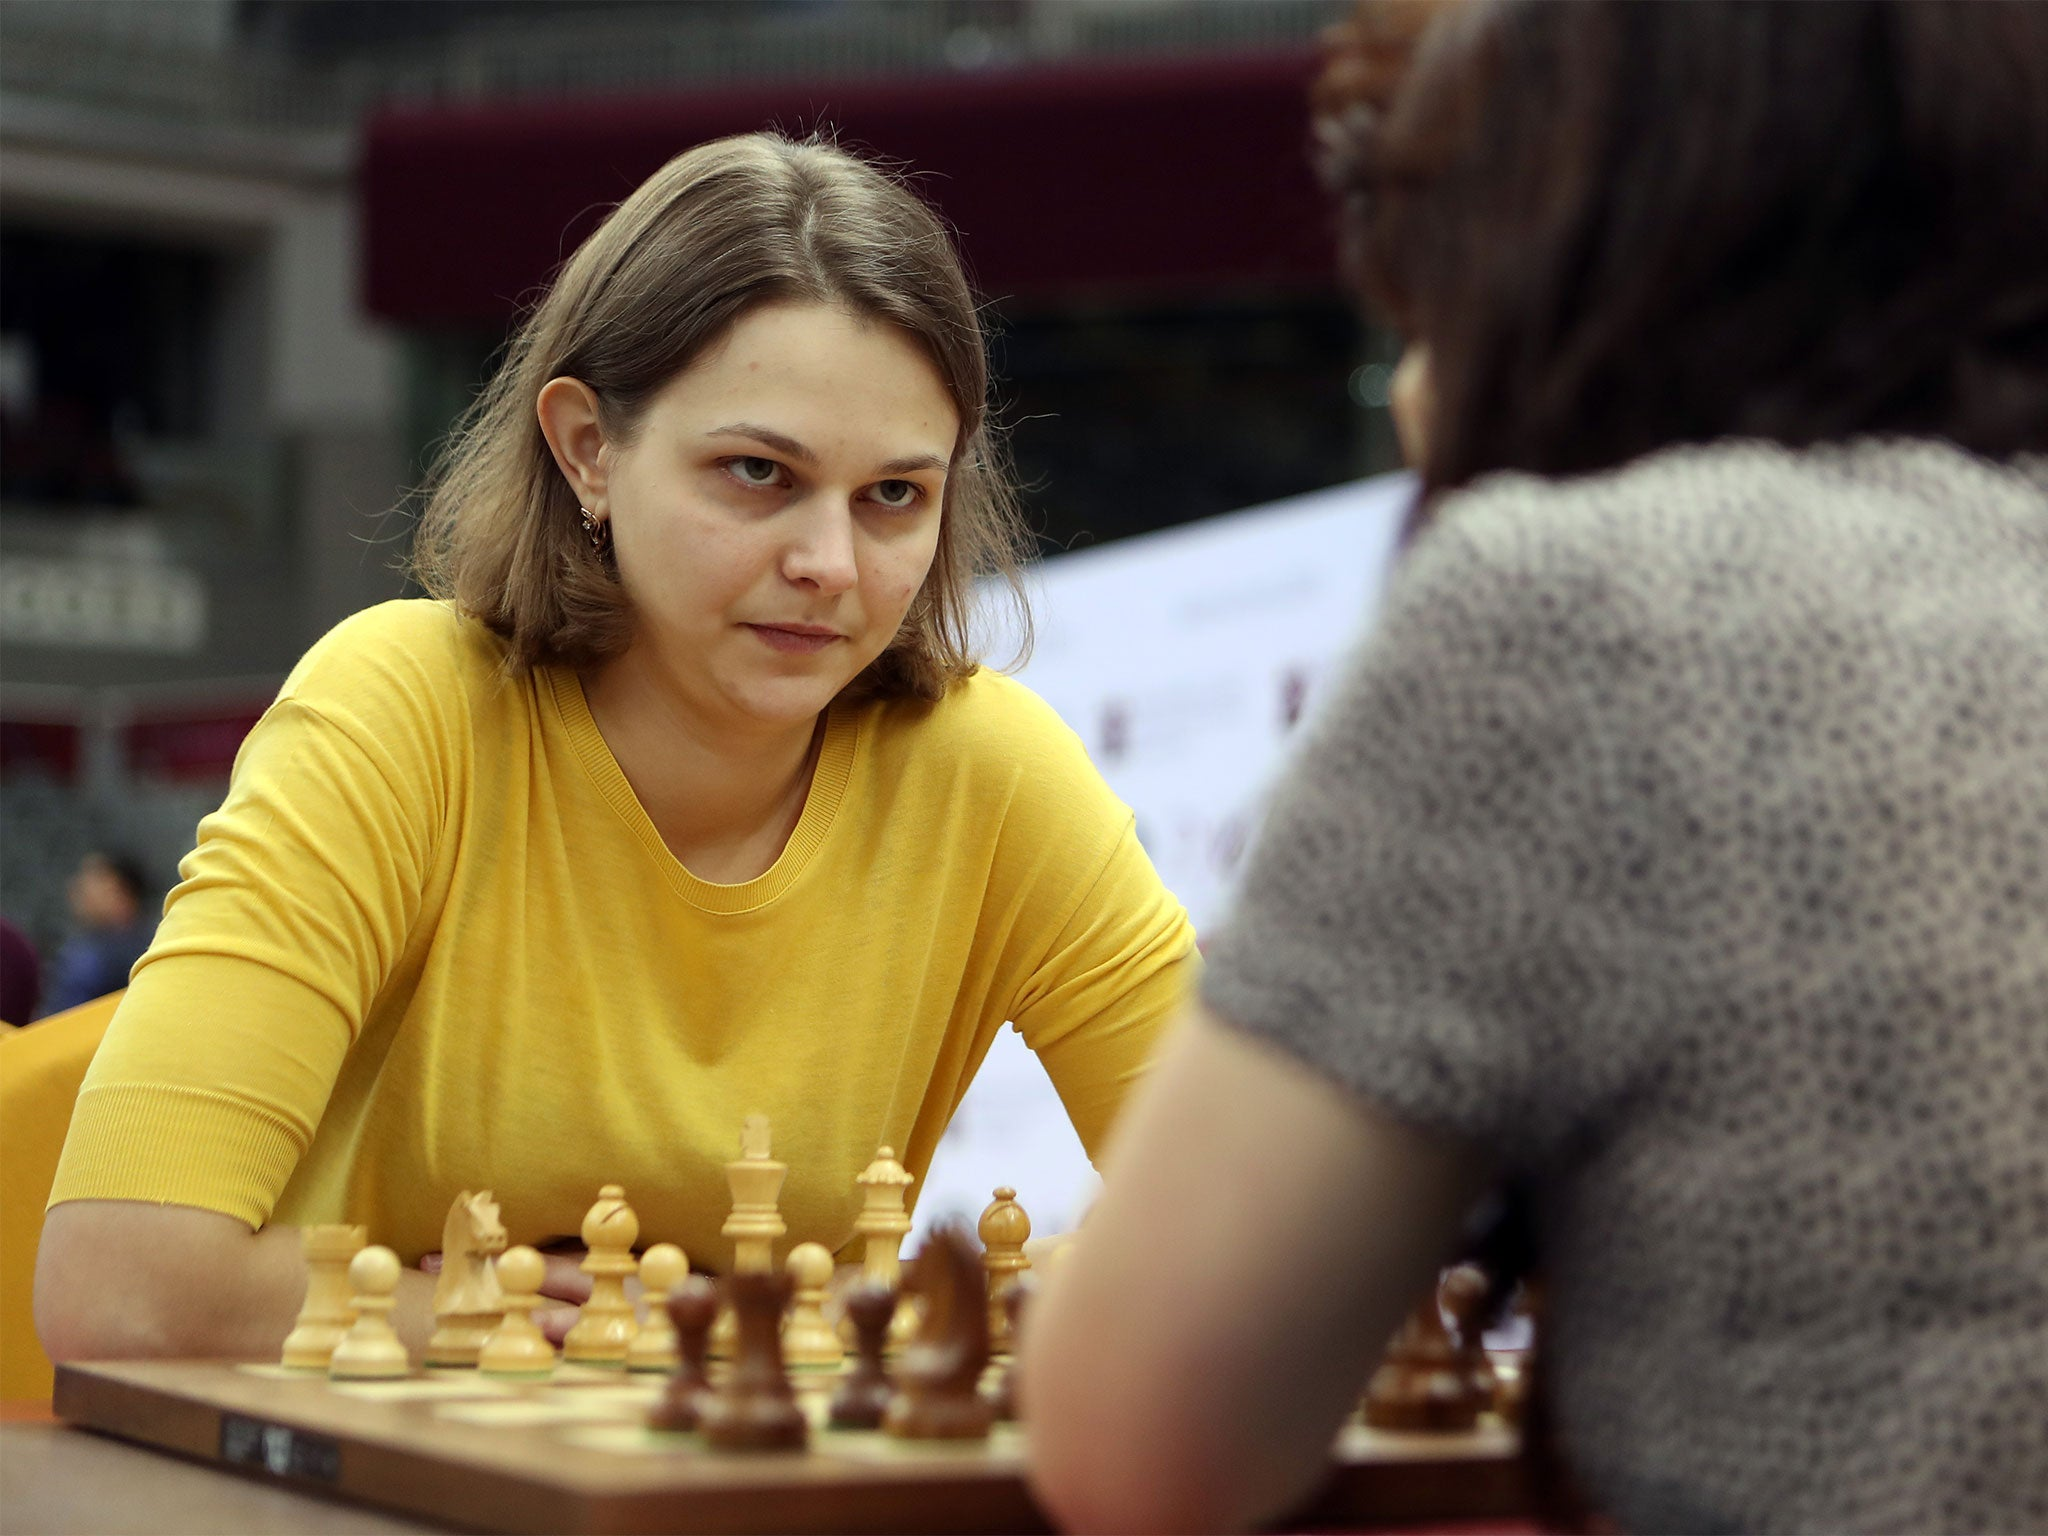 'I am ready to stand for my principles': Double world chess champion says she won't defend titles in Saudi Arabia because of kingdom's inequality. The Ukrainian, 27, will not travel to Saudi Arabia, where she wouldn't even be allowed to walk down the street unaccompanied.